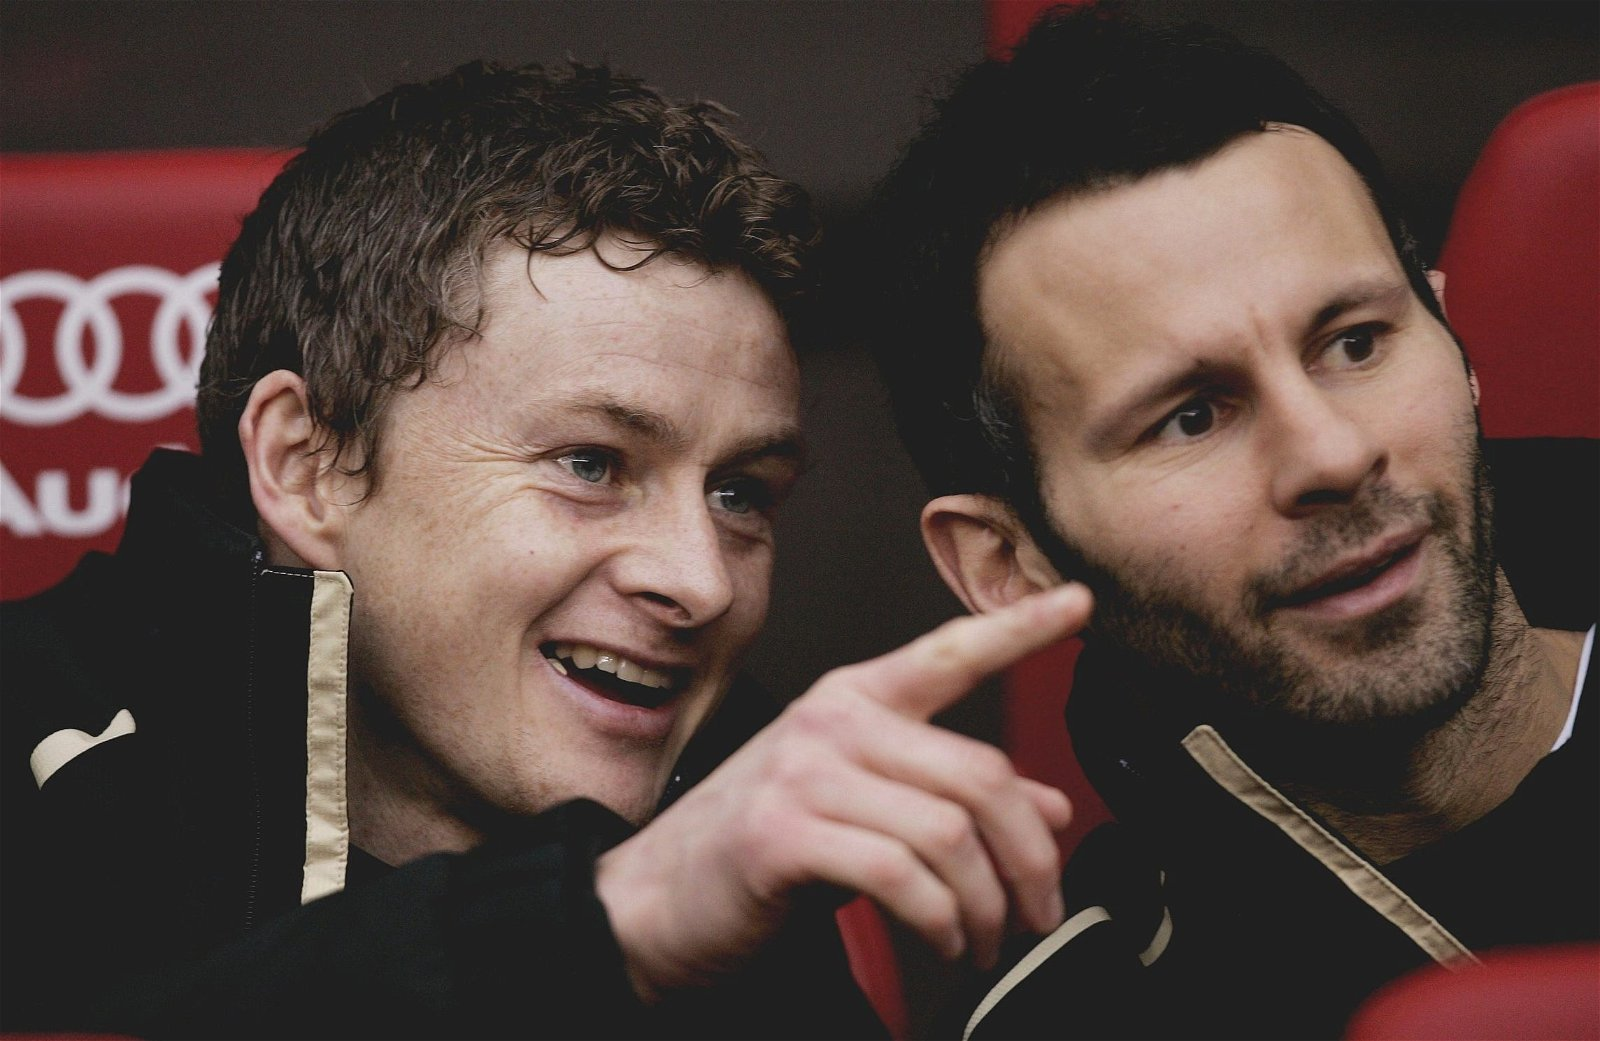 Ole Gunnar Solskjaer on the bench with Ryan Giggs